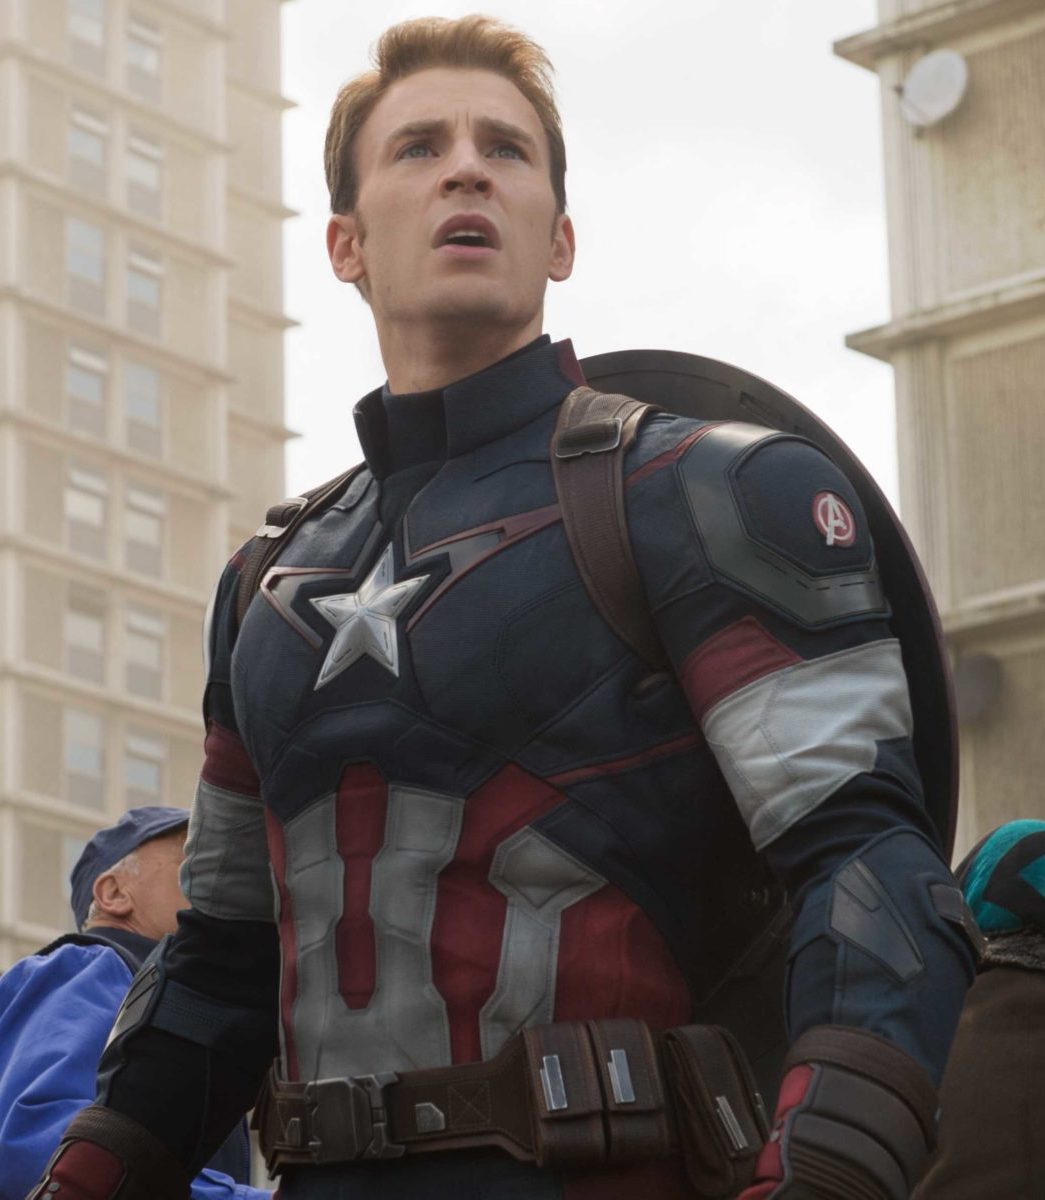 image 10 30 Things You Didn't Know About Avengers: Age of Ultron